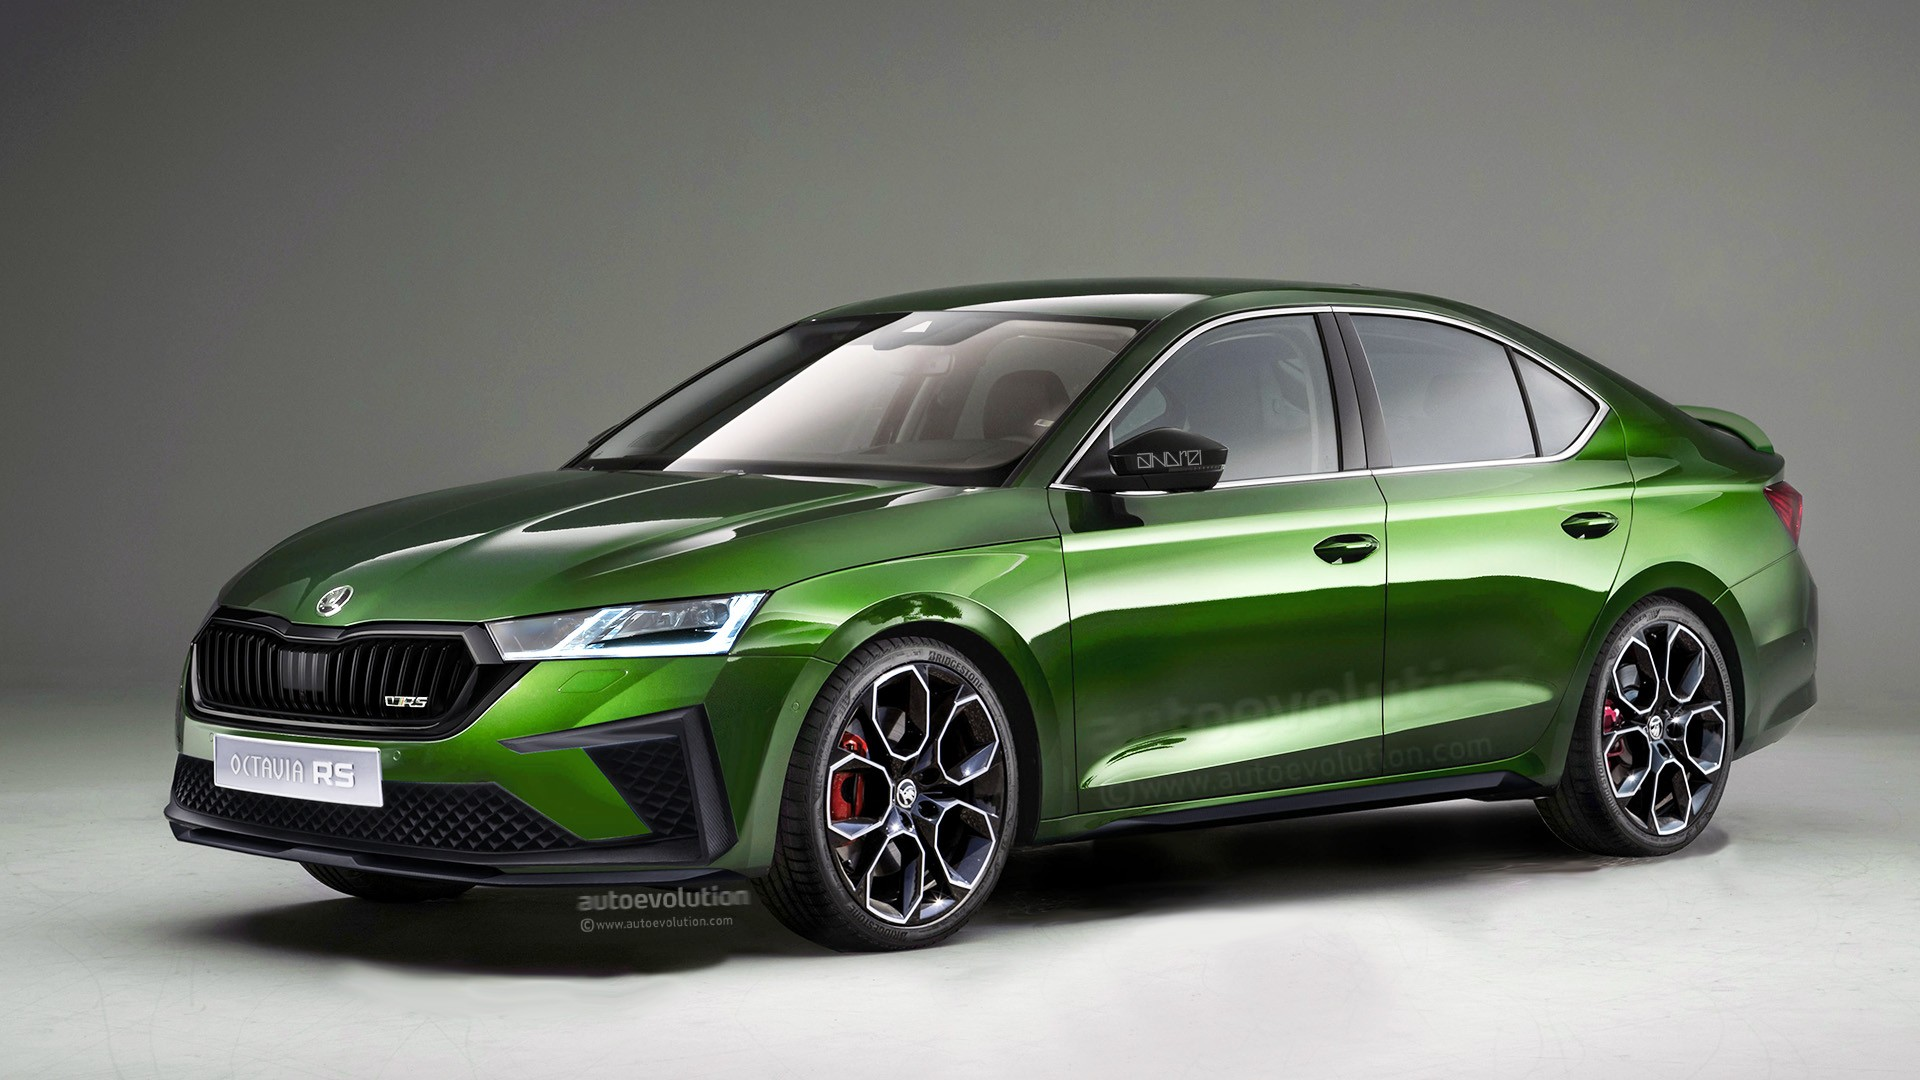 2020 Skoda Octavia Rs To Blend Performance And Practicality Will Look Like This Autoevolution